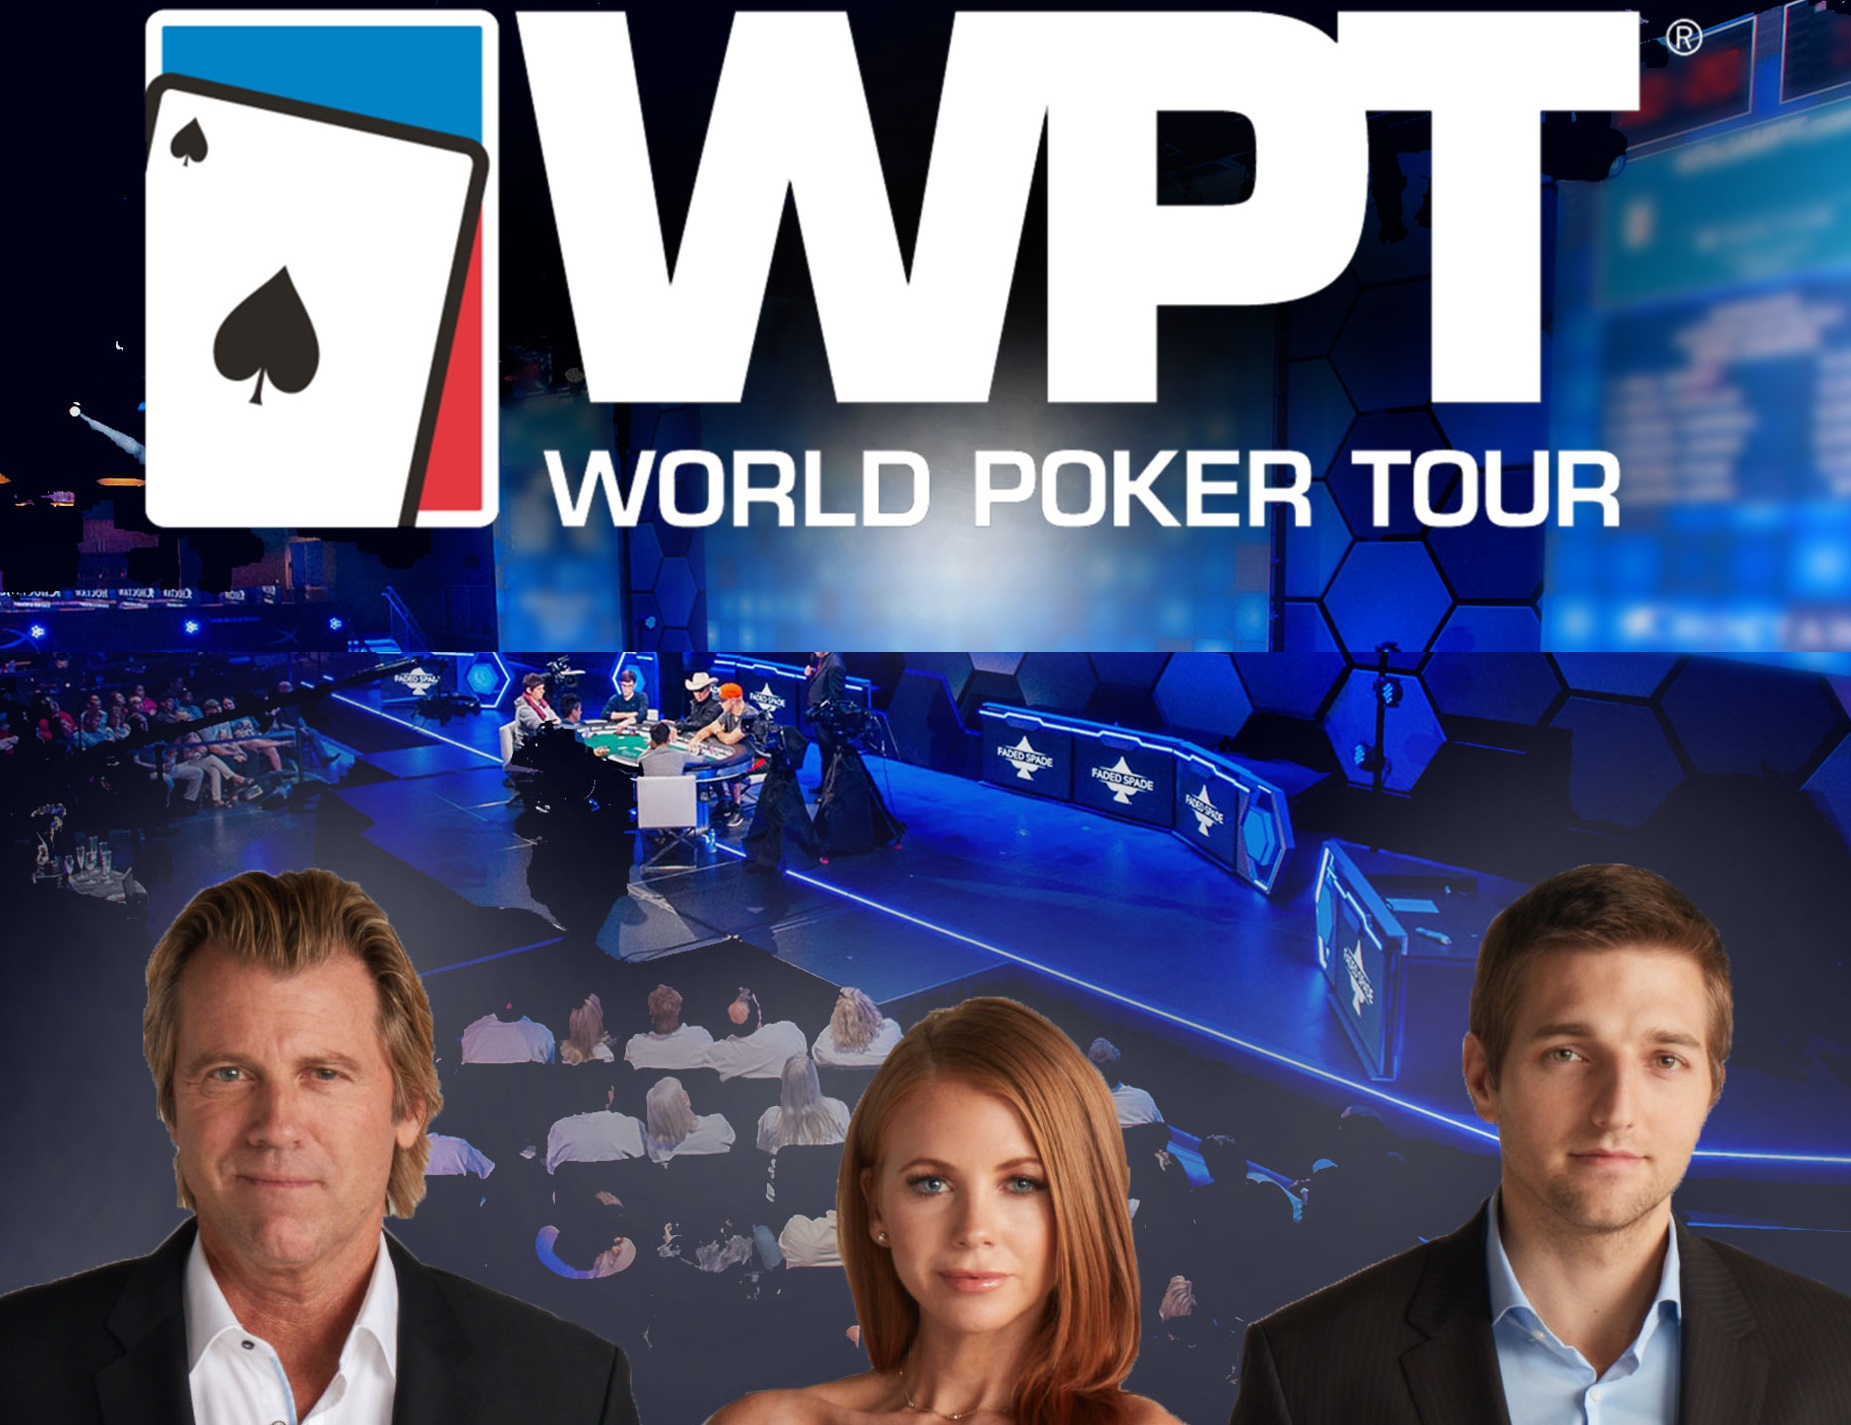 The WPT